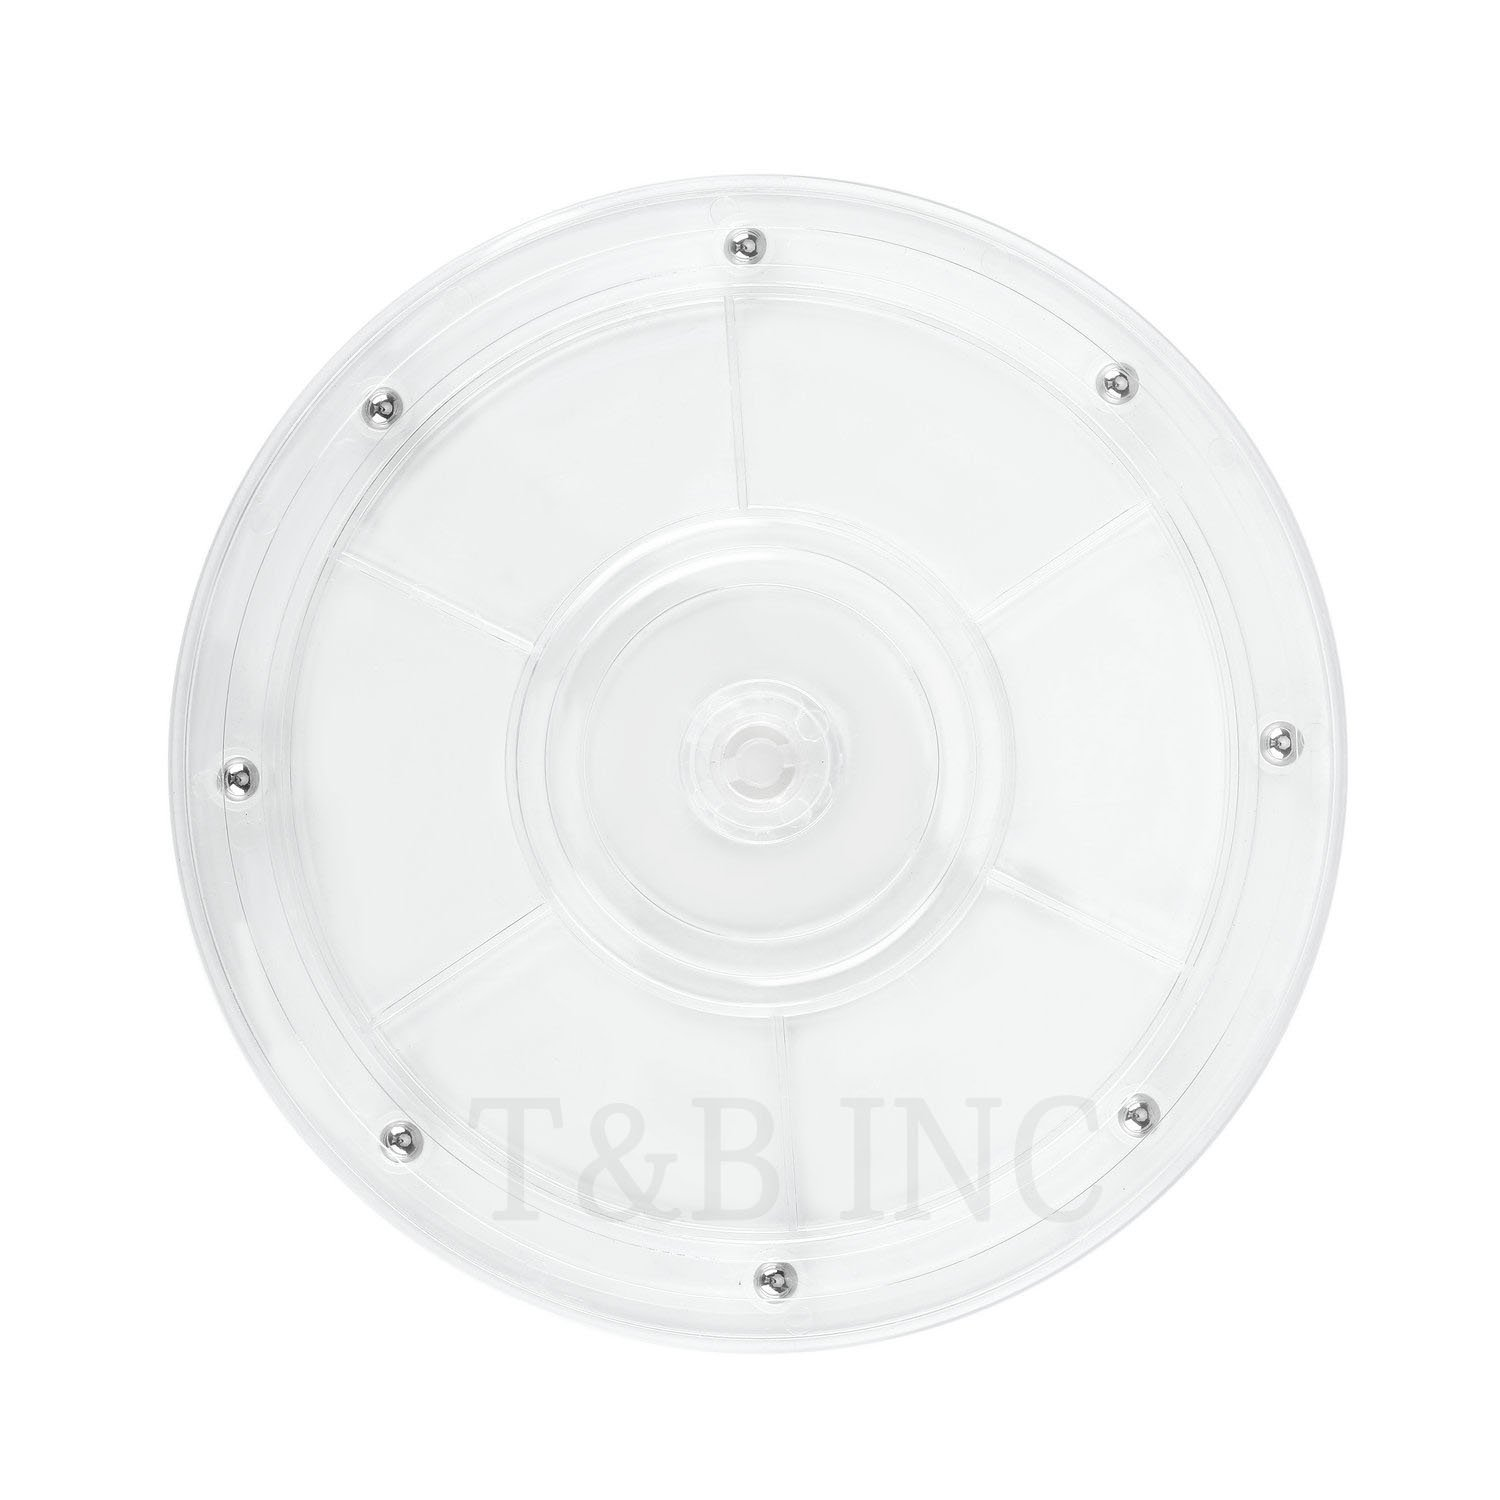 T/&B 8 inch Lazy Susan Turntable Organizer Acrylic for Spice Rack Table Cake Kitchen Pantry Decorating Black